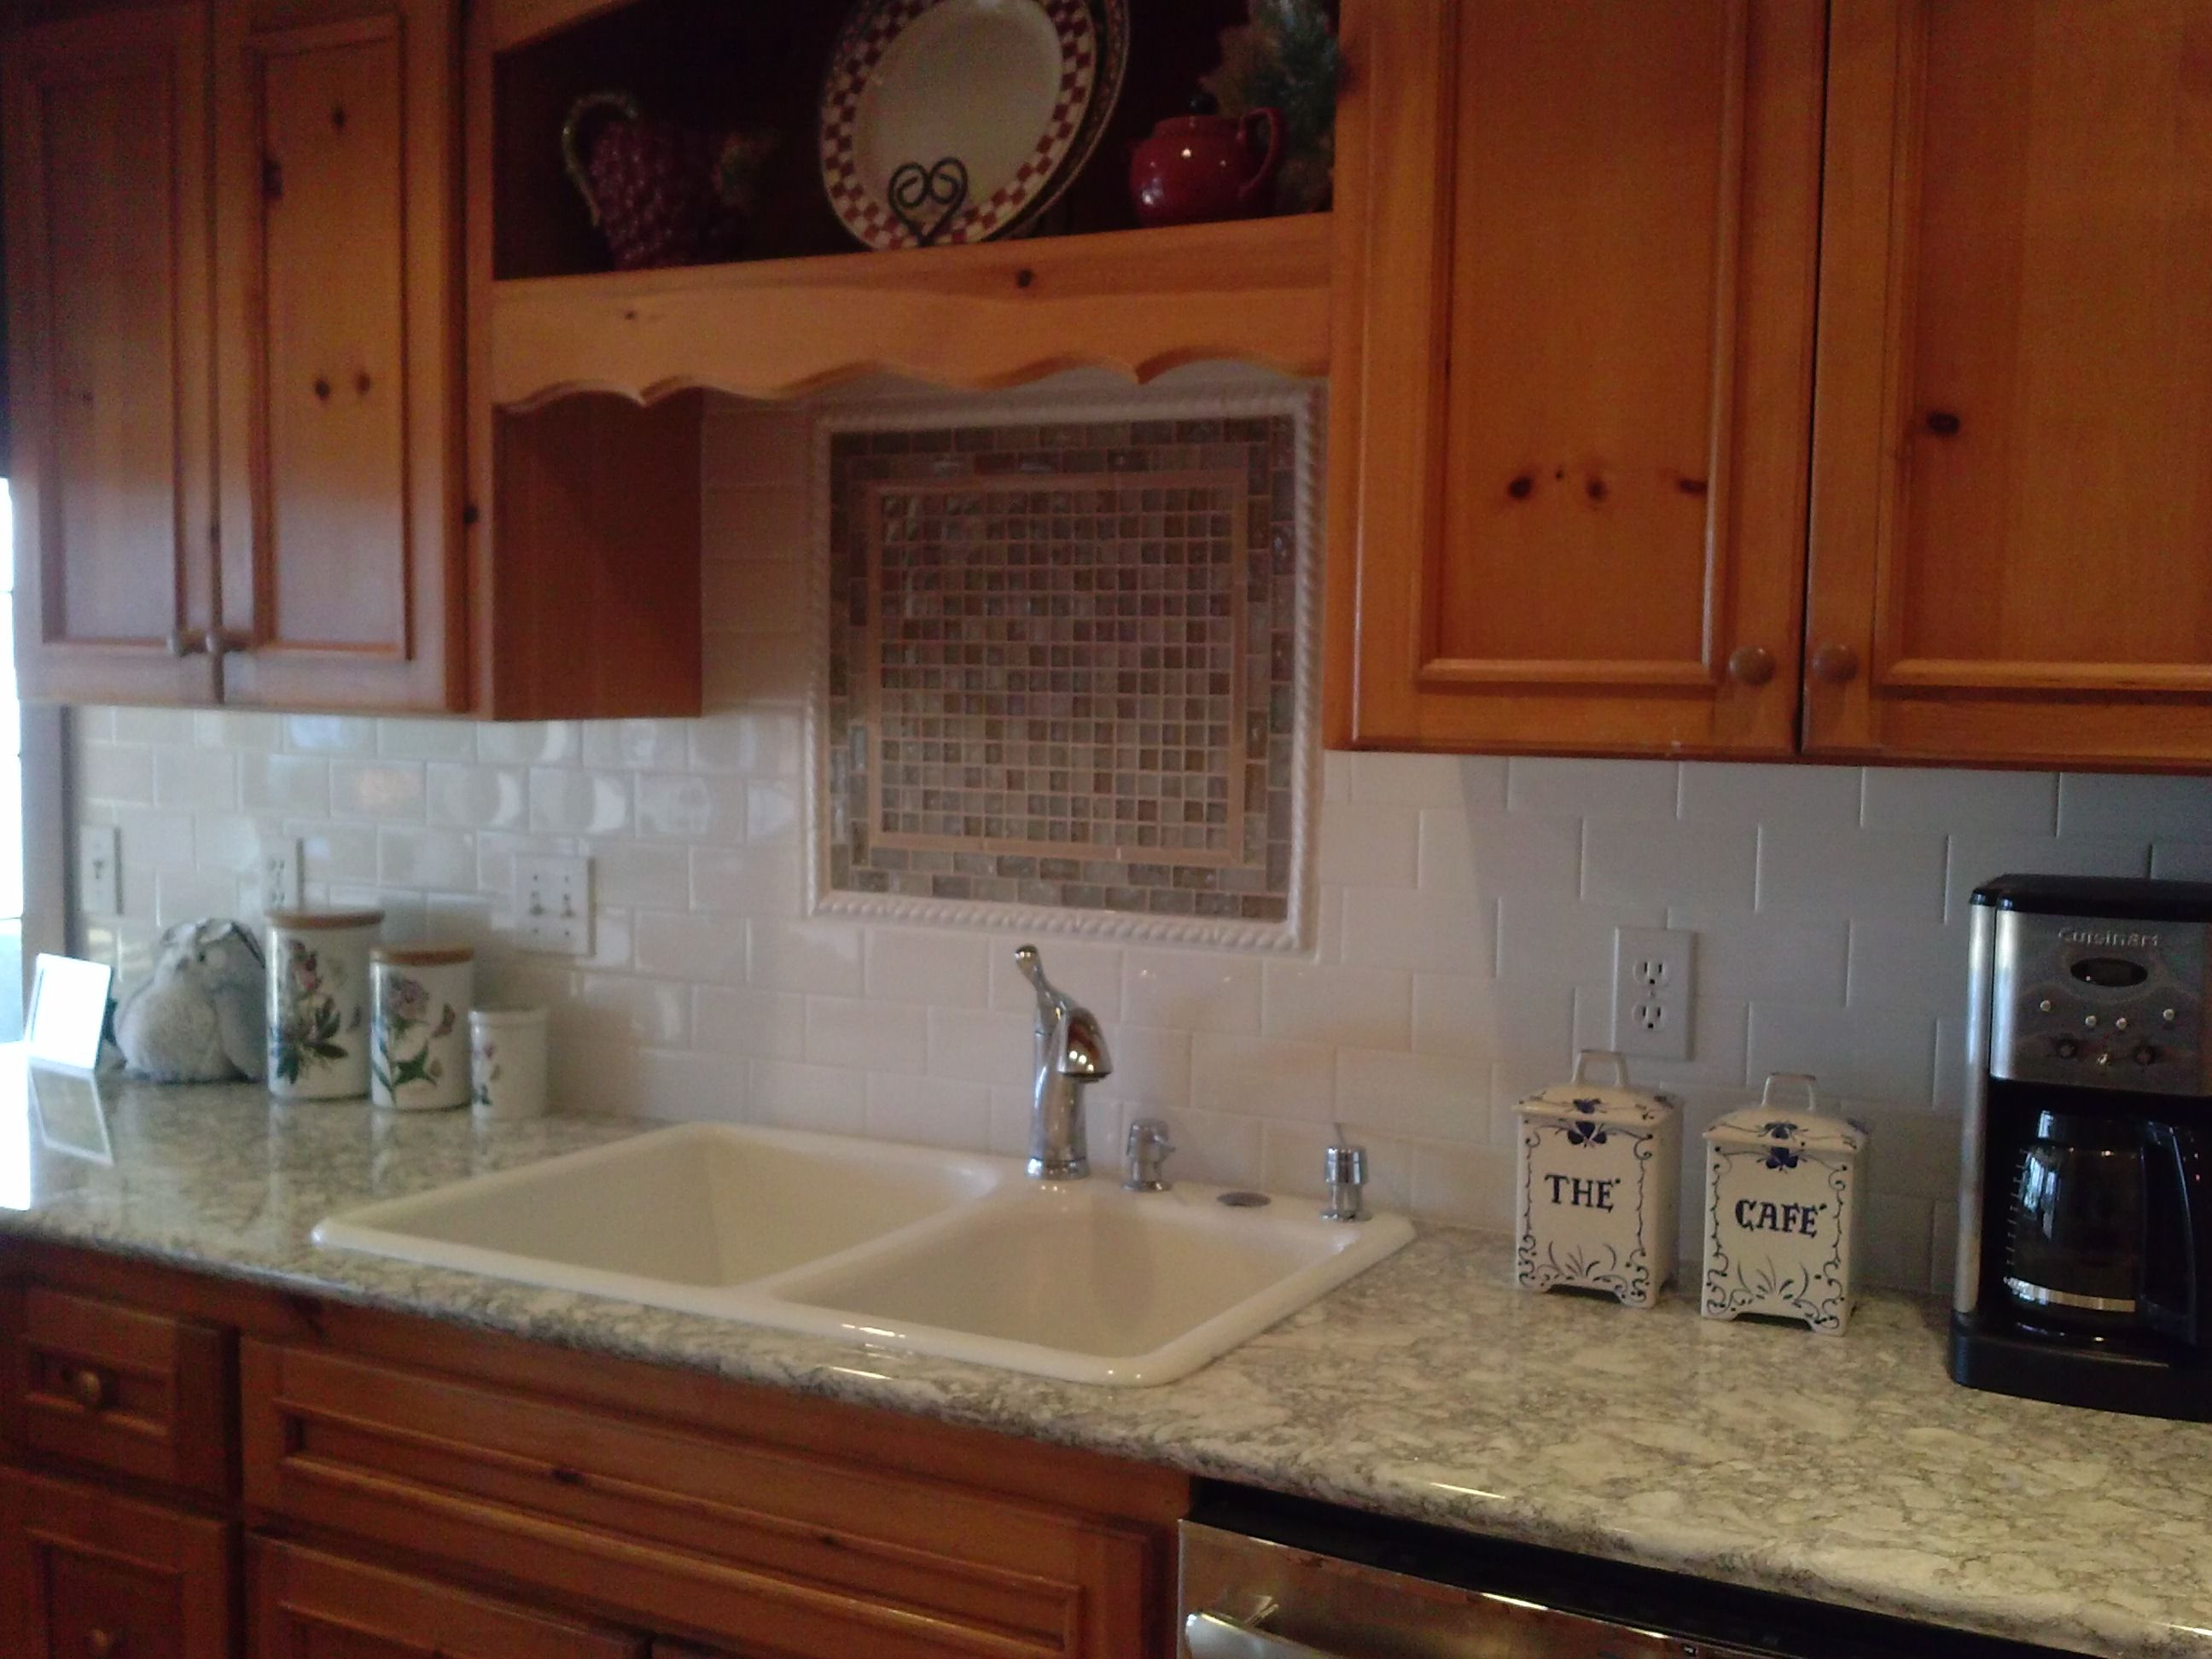 A Recent HATLOEu0027S Installation: BEAUTIFUL Cambria Quartz Countertop In  Berwyn With Subway Tile.